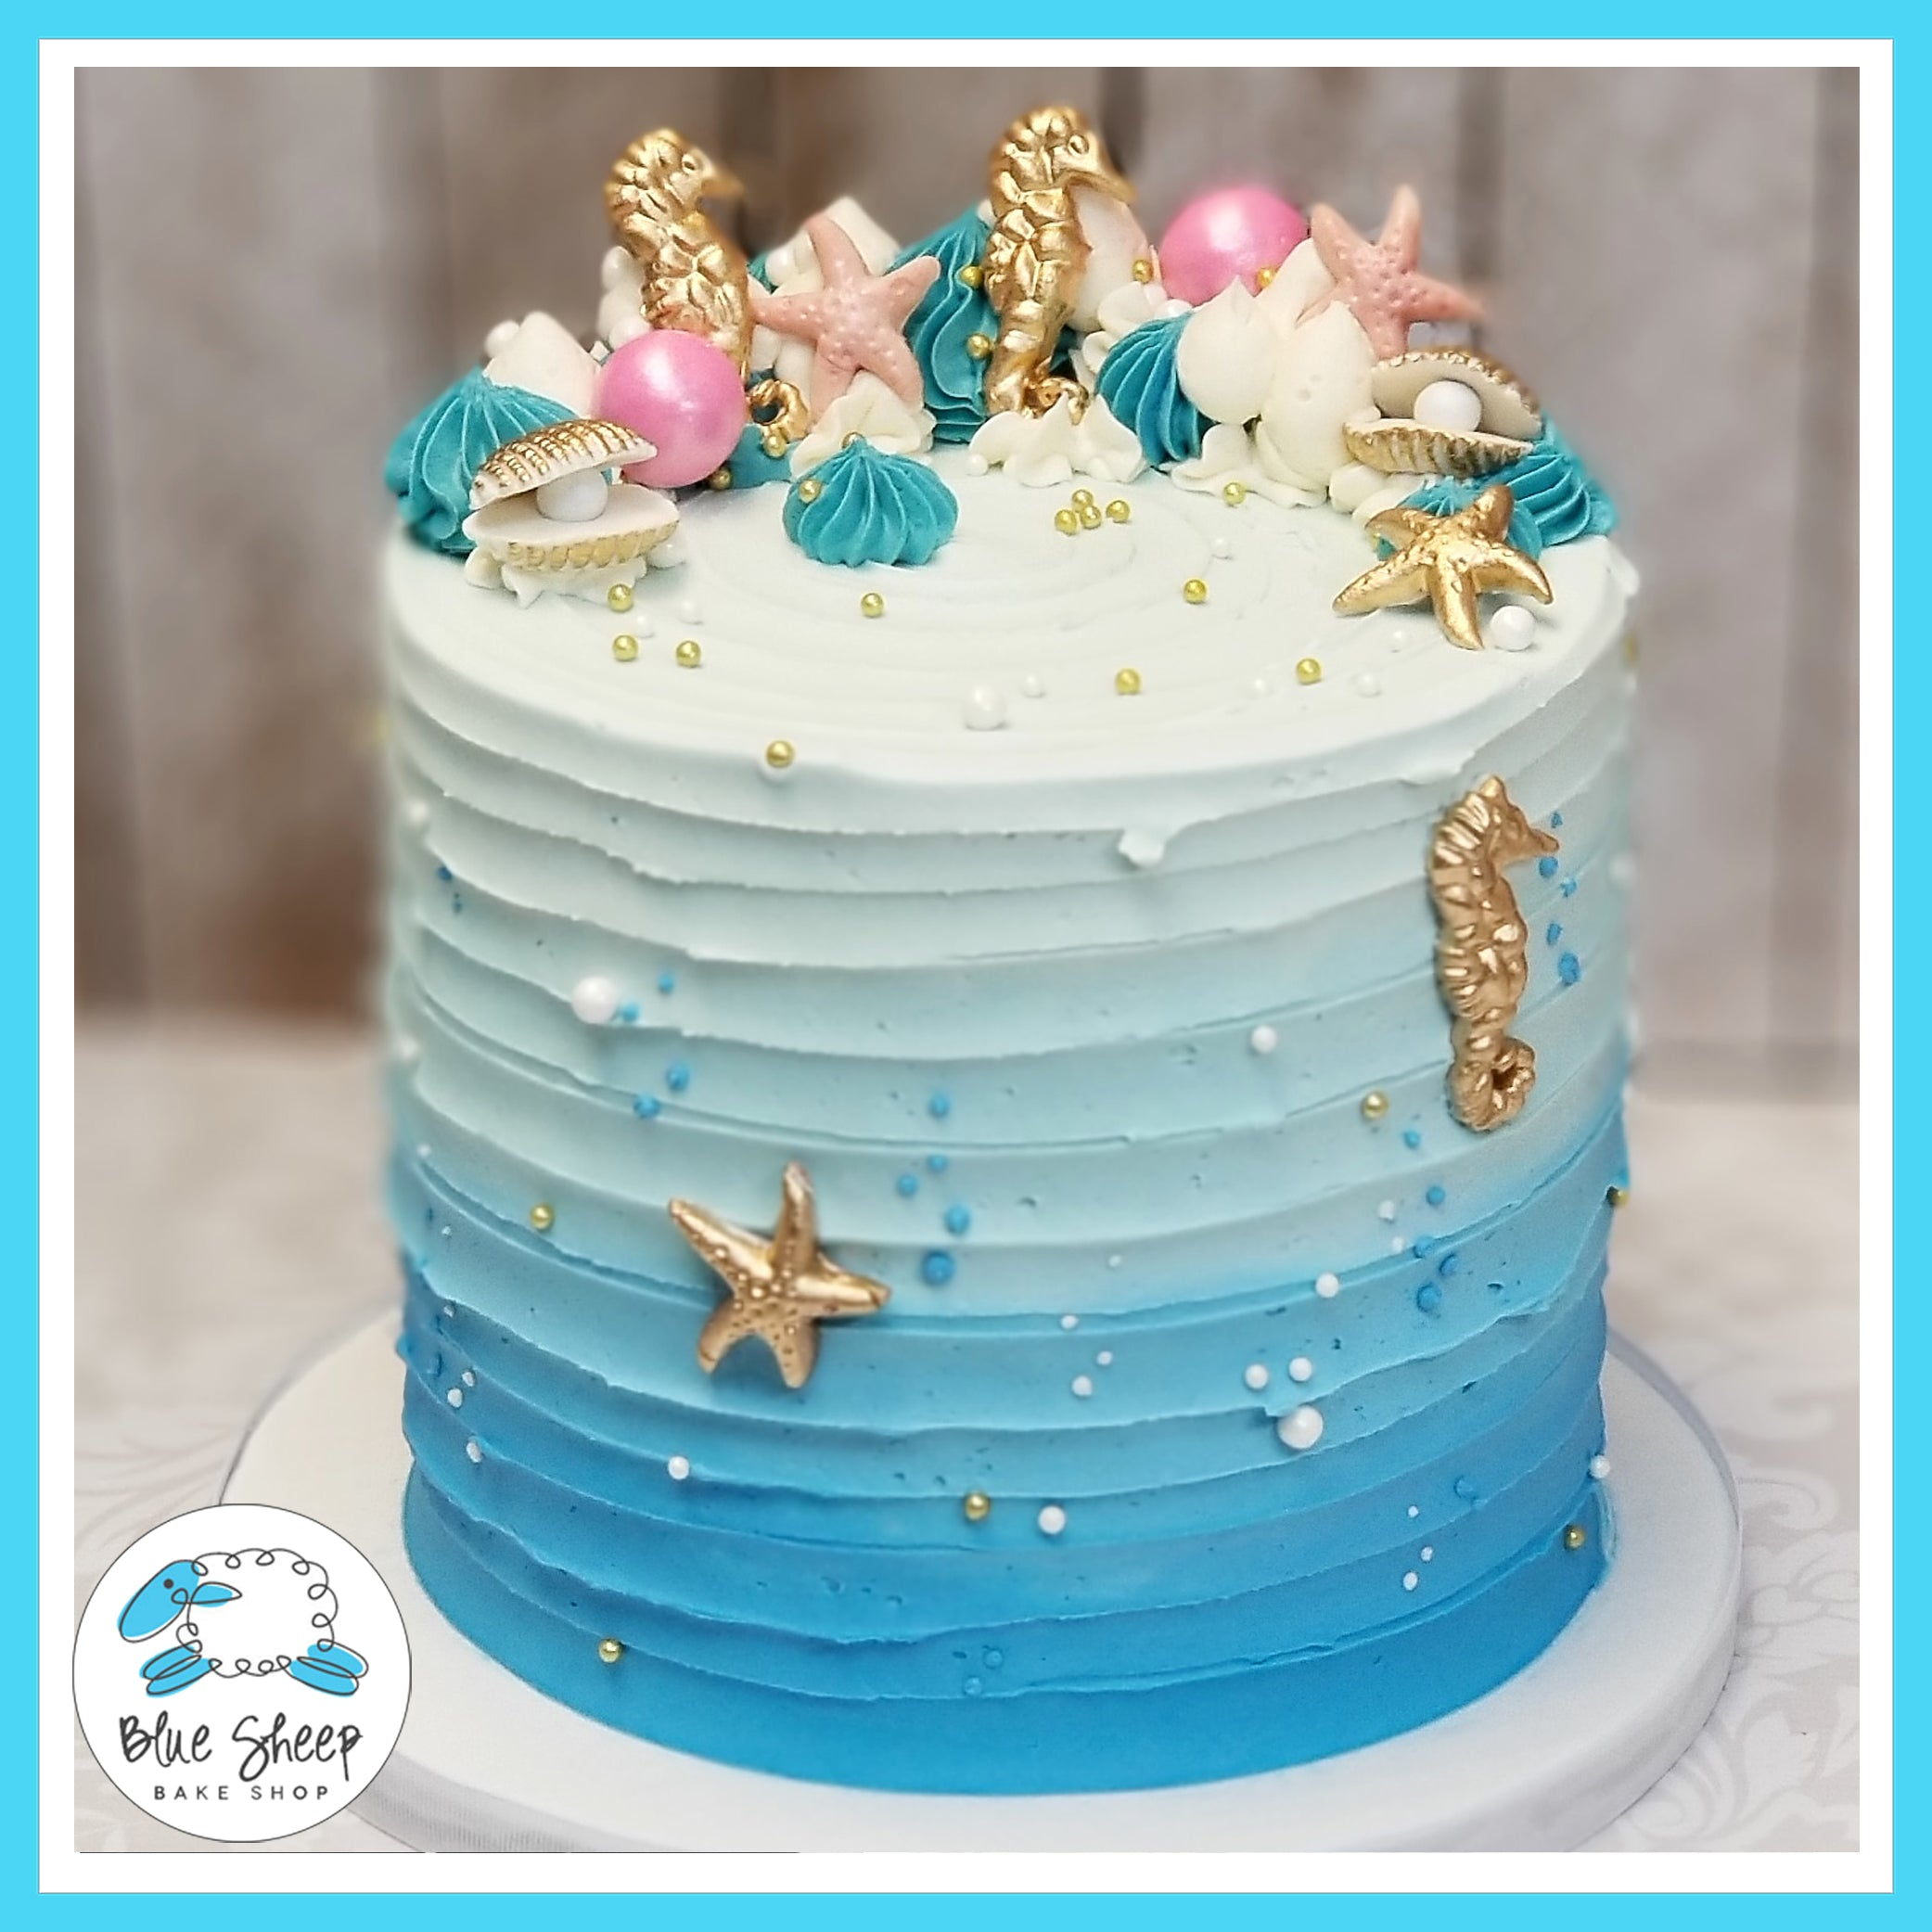 Wondrous Under The Sea Birthday Cake Nj Blue Sheep Bake Shop Funny Birthday Cards Online Elaedamsfinfo